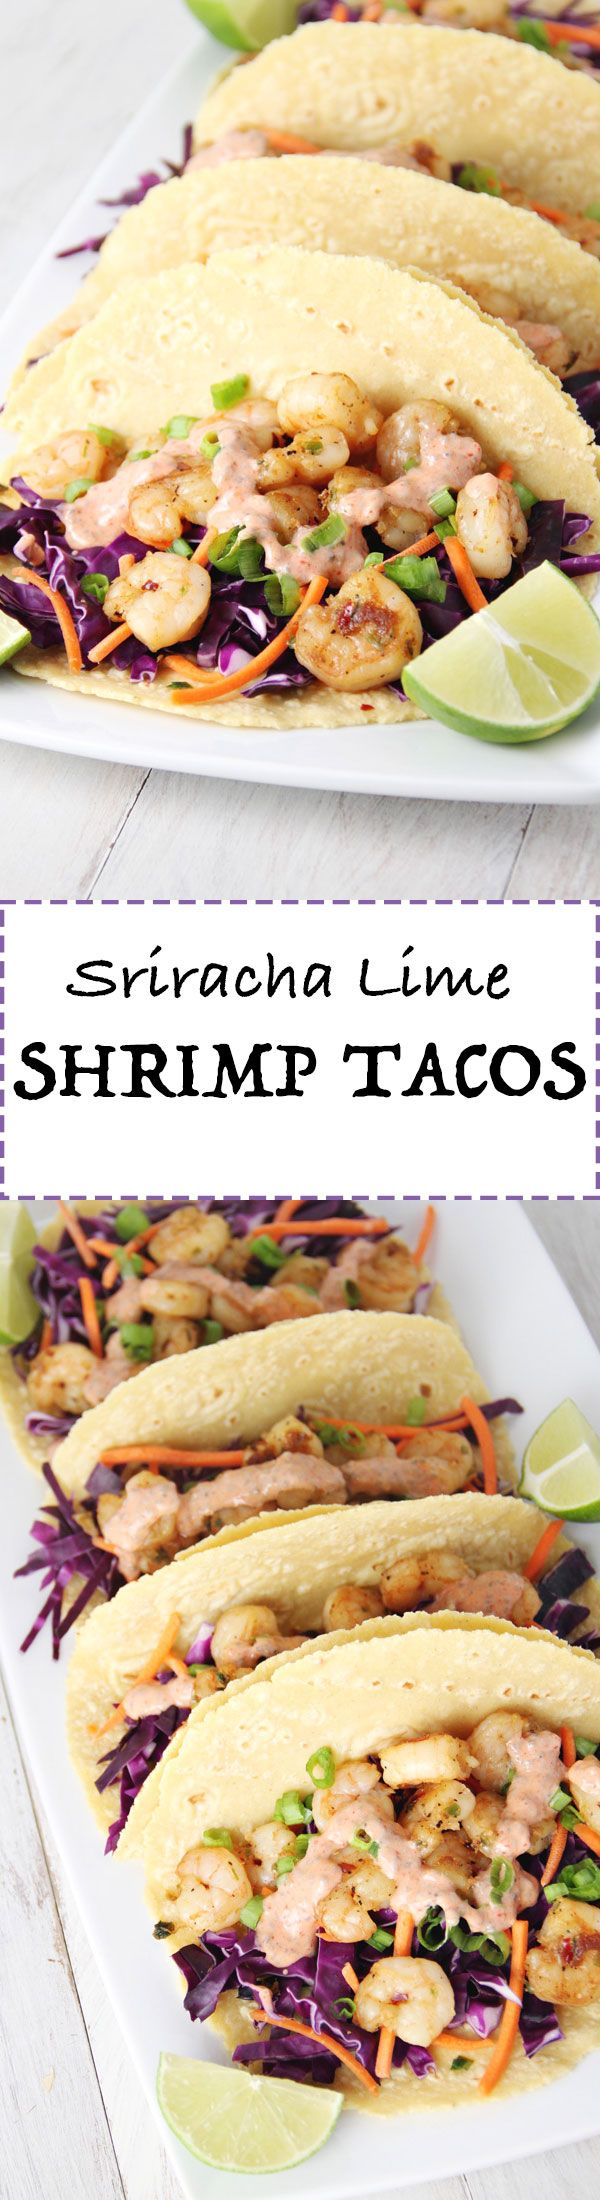 Sriracha Lime Shrimp Tacos by JarOfLemons.com! These are seriously amazing!